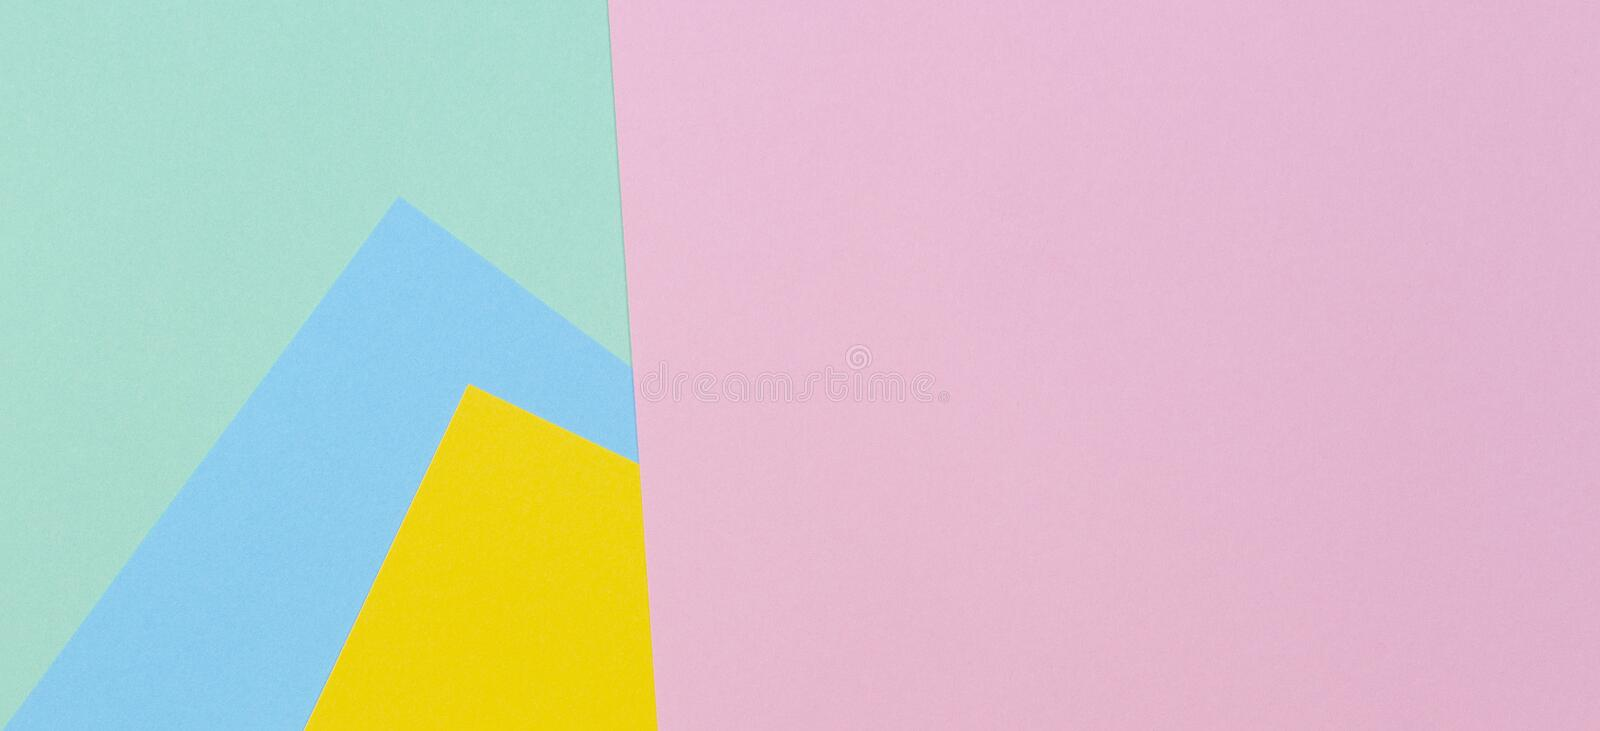 Abstract geometric paper texture background with trendy colors pastel pink, yellow, light blue and green color royalty free stock images